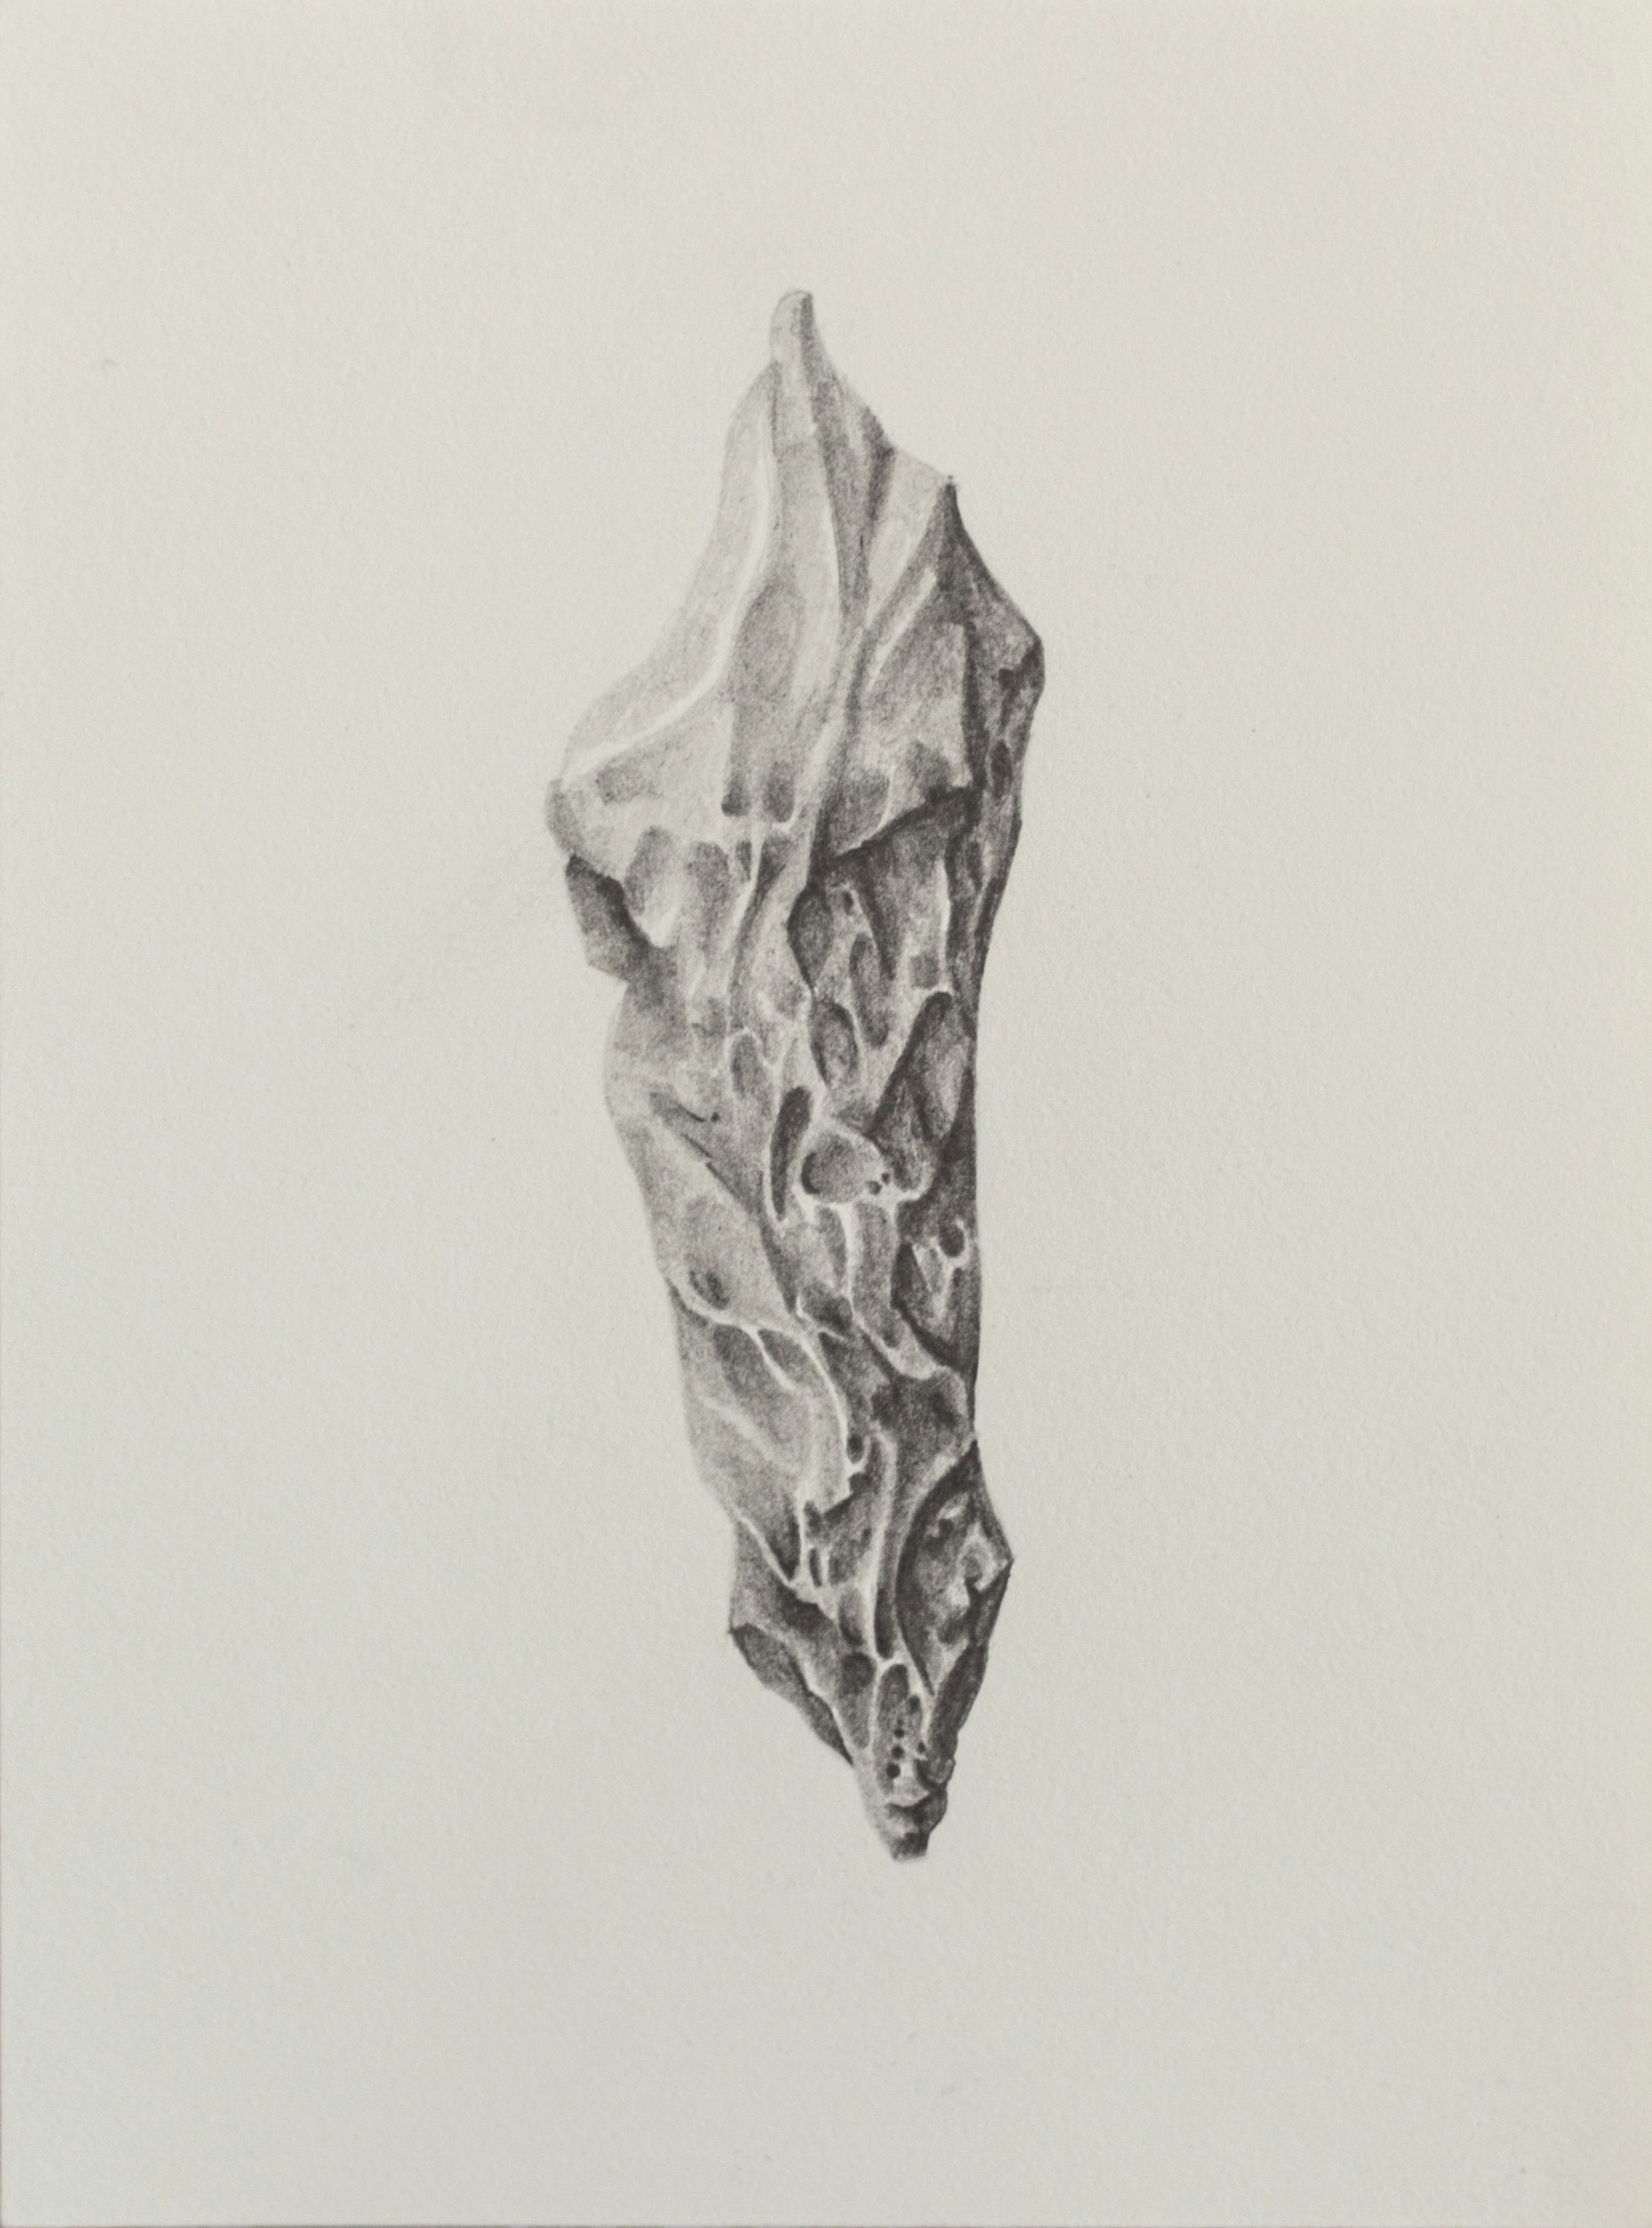 Tool — Pencil on paper, 11 x 15 cm , 2017.